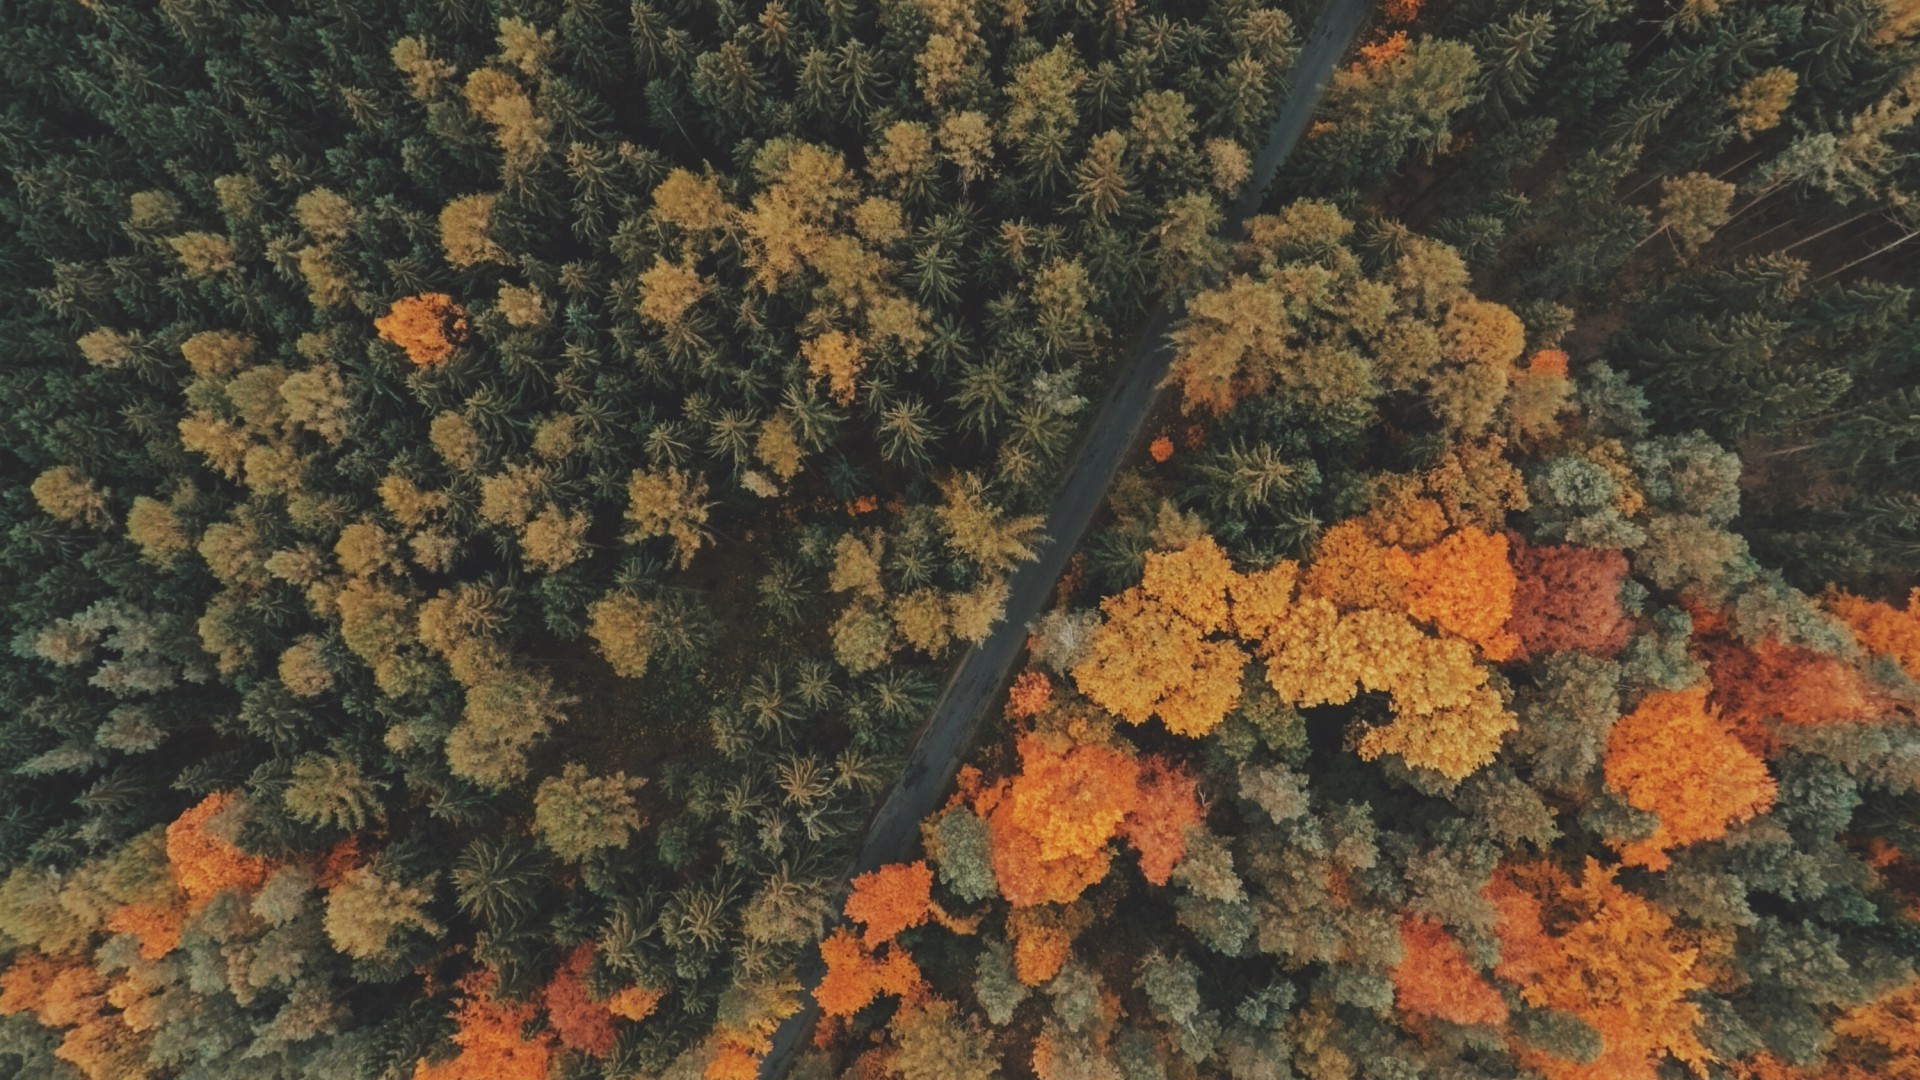 Fall Border Wallpaper For Desktop Nature Trees Forest Road Fall Landscape Aerial View